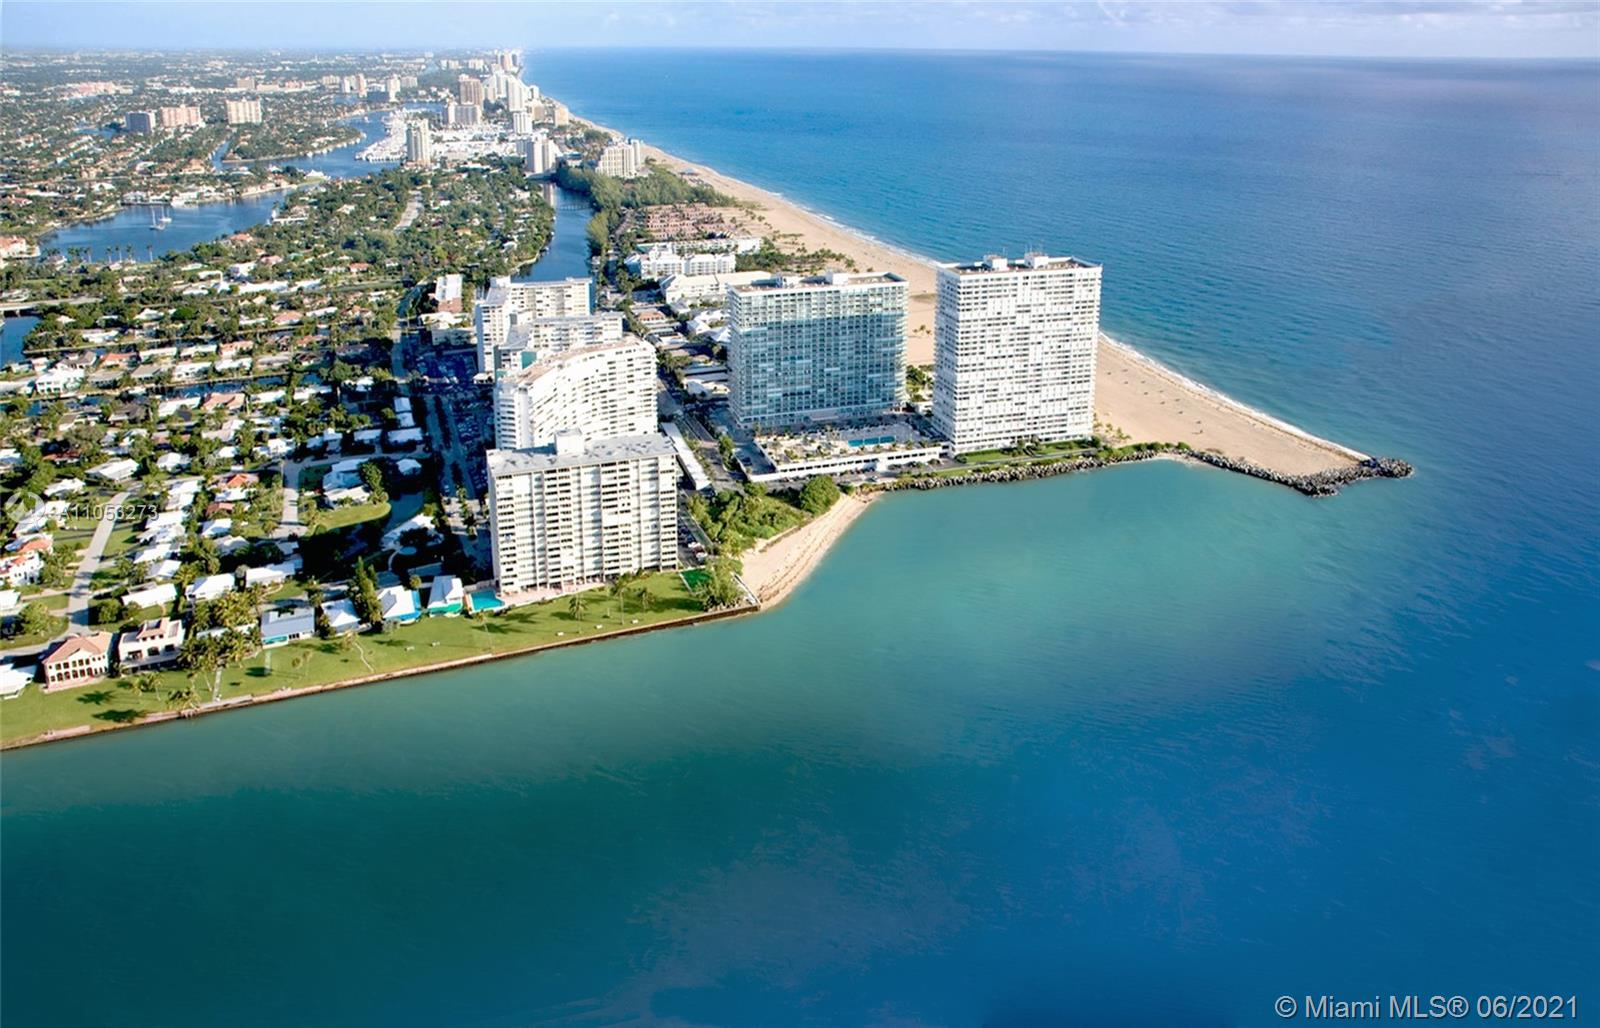 One of a kind, rarely available upper floor double unit at highly desirable Point II.  Enjoy the most spectacular views from the Hillsboro Lighthouse to Miami Beach from all rooms and from both north and south oversized terraces. Approximately 4,280 square feet and features include custom kitchen and bar, formal and informal dining, oversized master suite with separate sitting area, spa-like master bath, huge walk-in closets and sprawling ocean views. Home office, abundance of storage space and separate laundry room complete this residence that feels like a single family home. Close proximity to restaurants and beach clubs. New five star resort amenities include grand lobby, restaurant, fitness center, guest hotel rooms, lush pools & beach service on the widest beach in Fort Lauderdale.